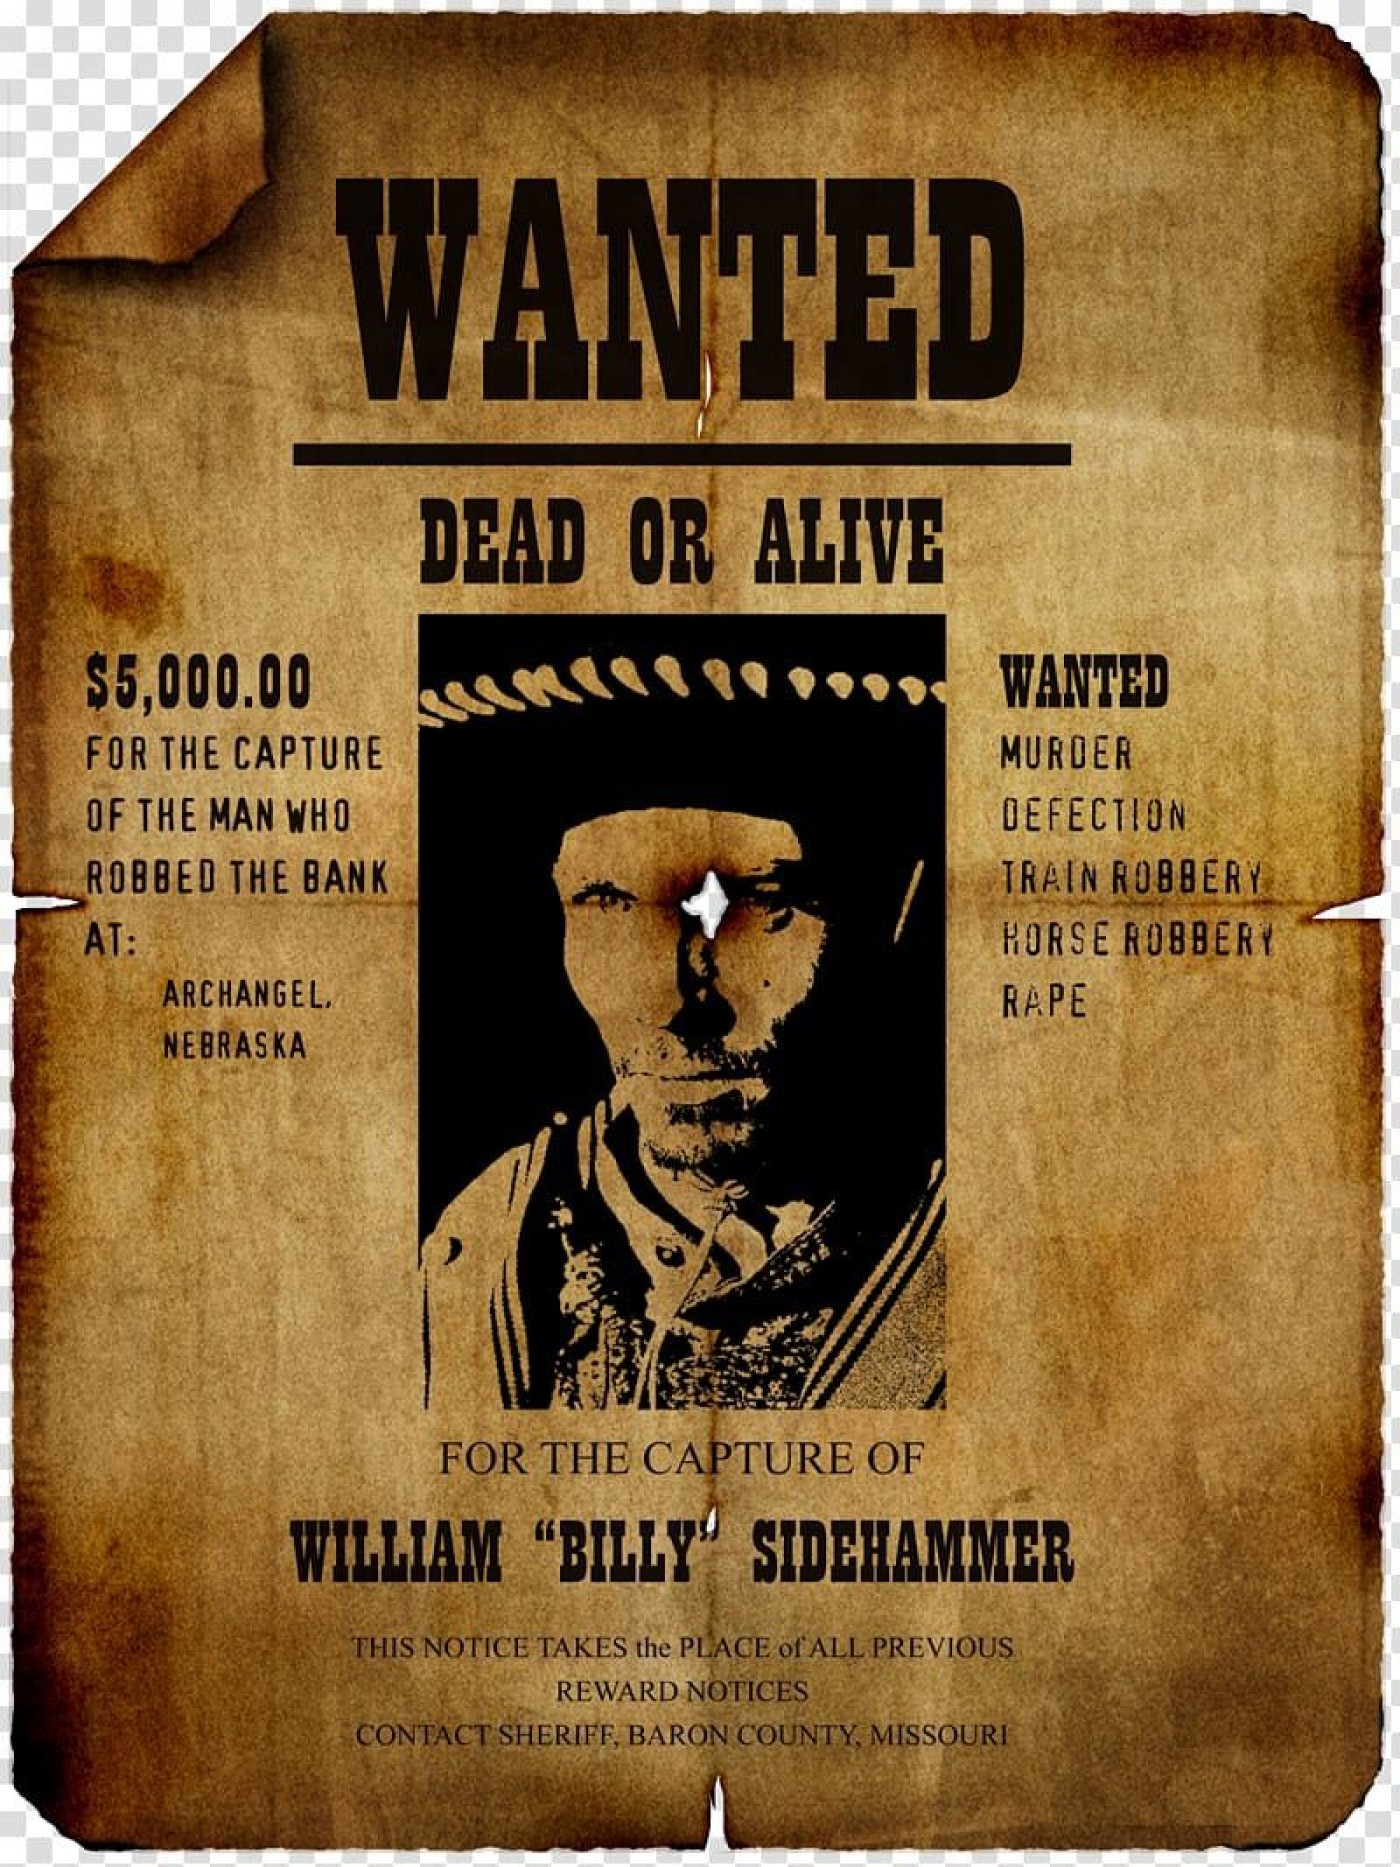 008 Stunning Wanted Poster Template Microsoft Word High Resolution  Western Most1400